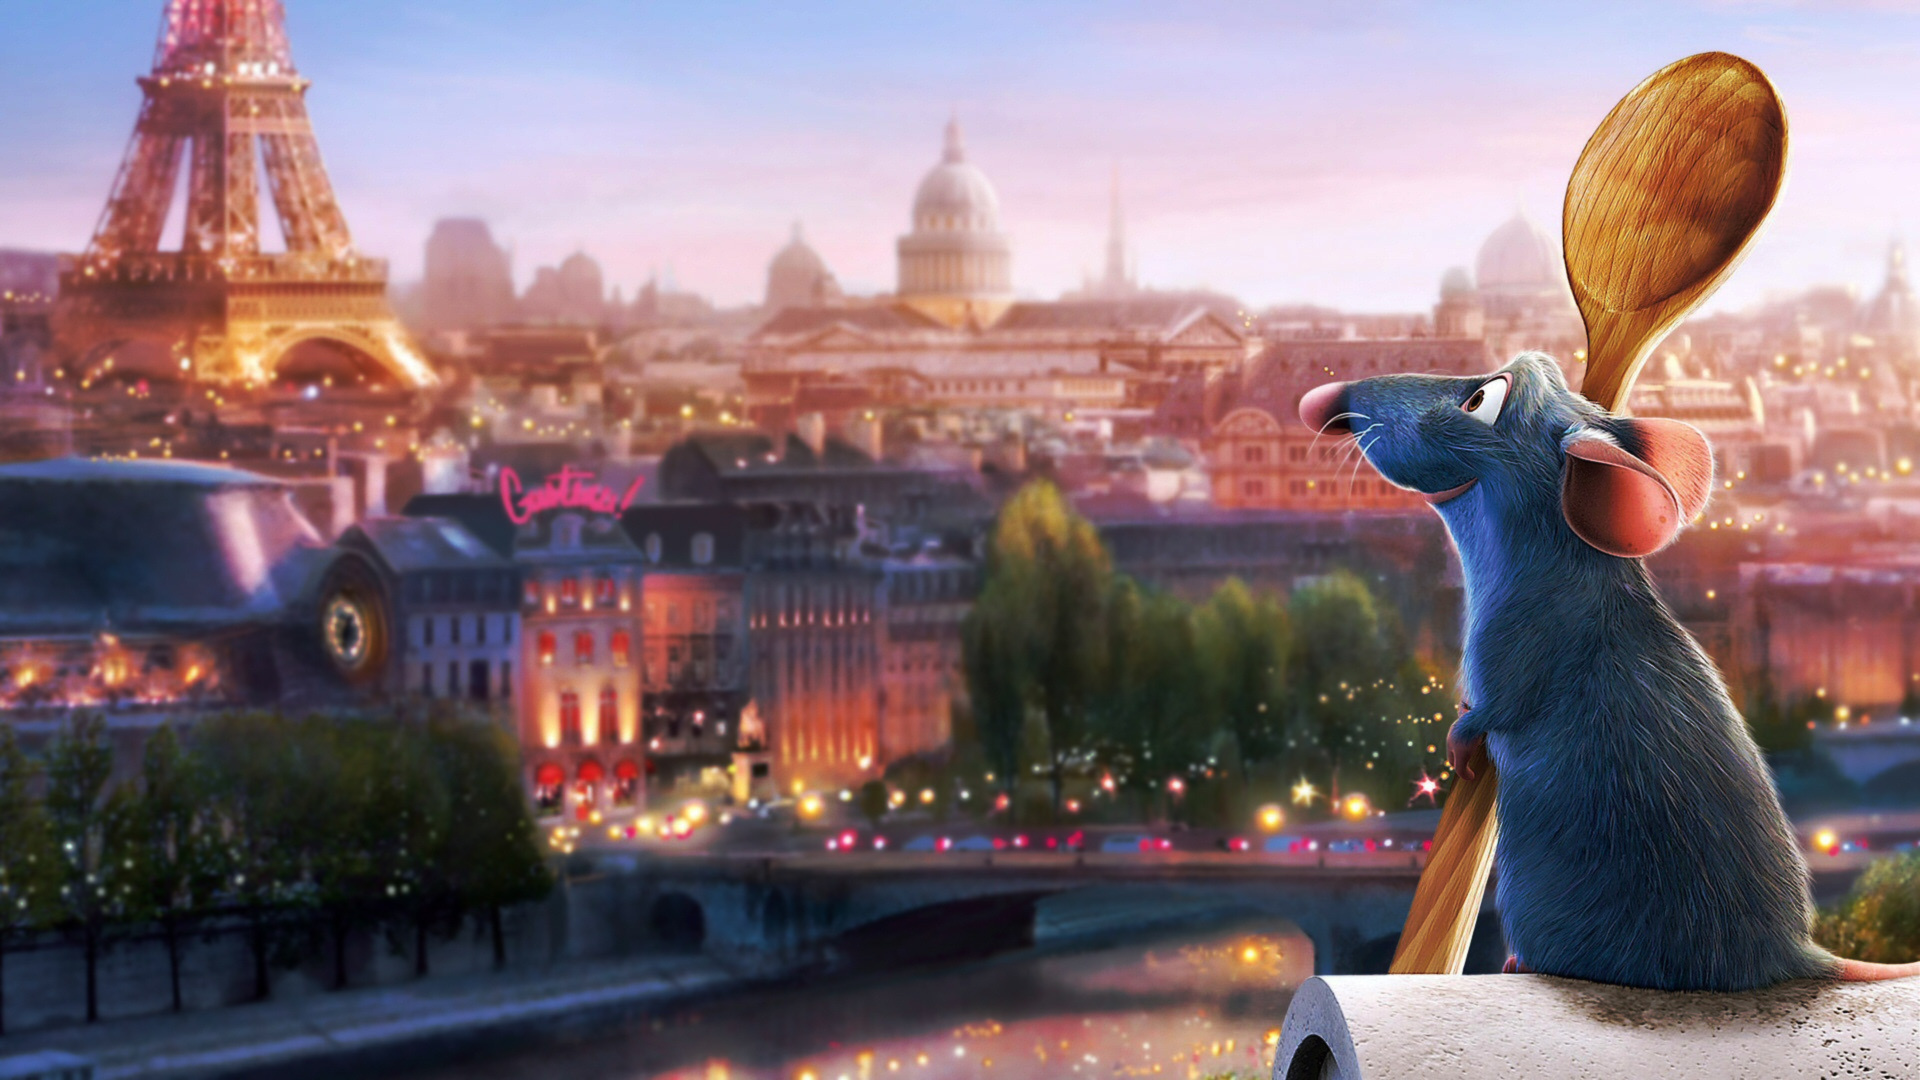 Ratatouille Background